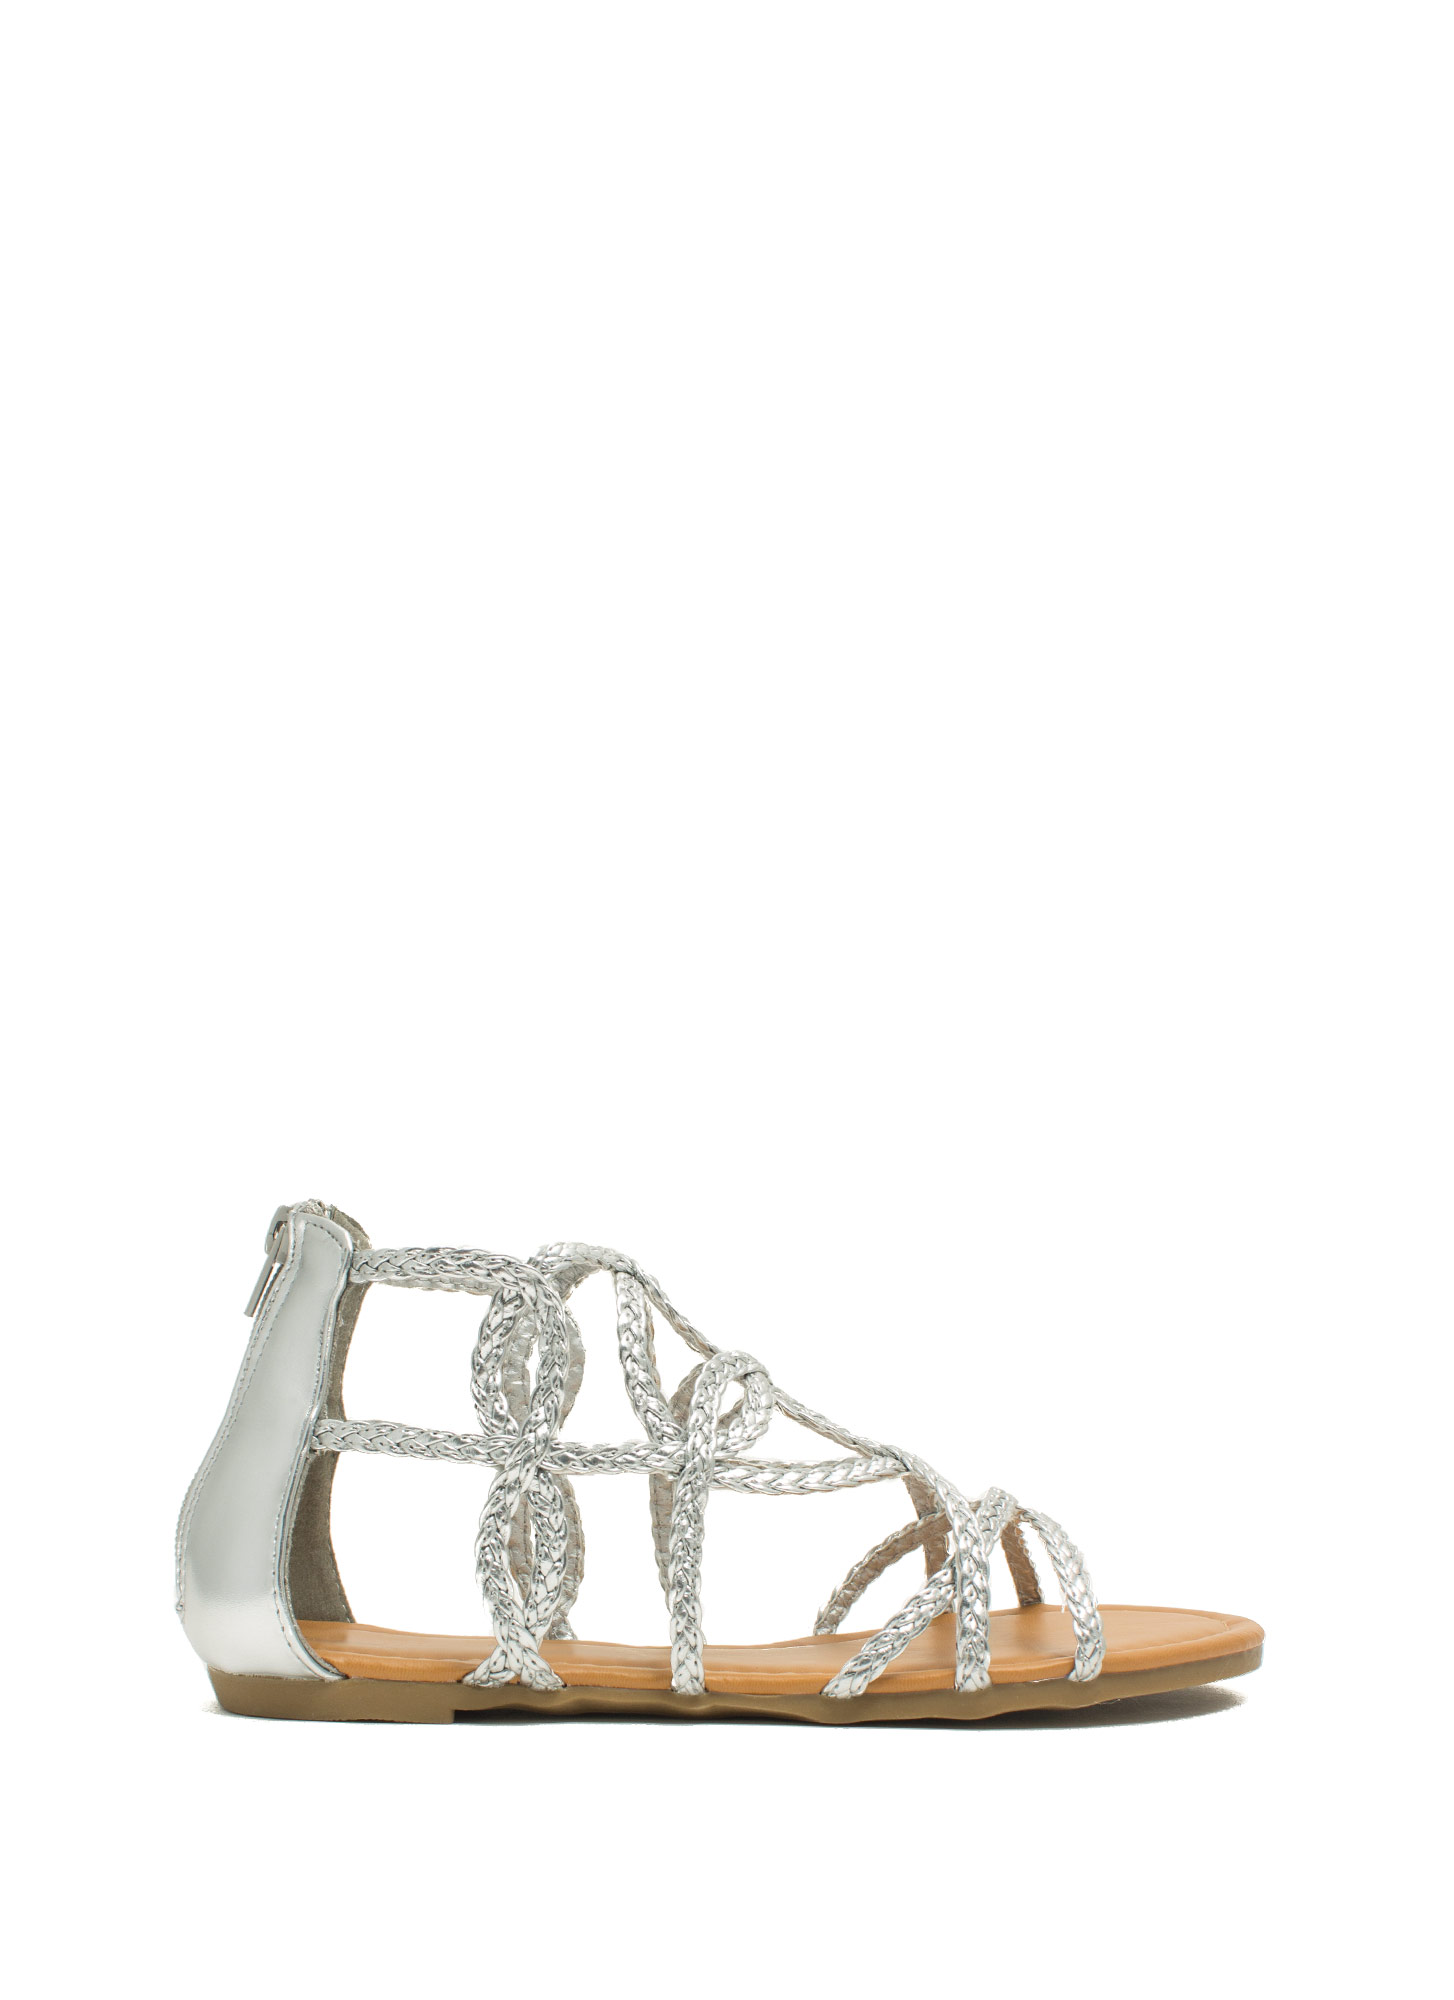 Loop-The-Loop Metallic Braided Sandals SILVER